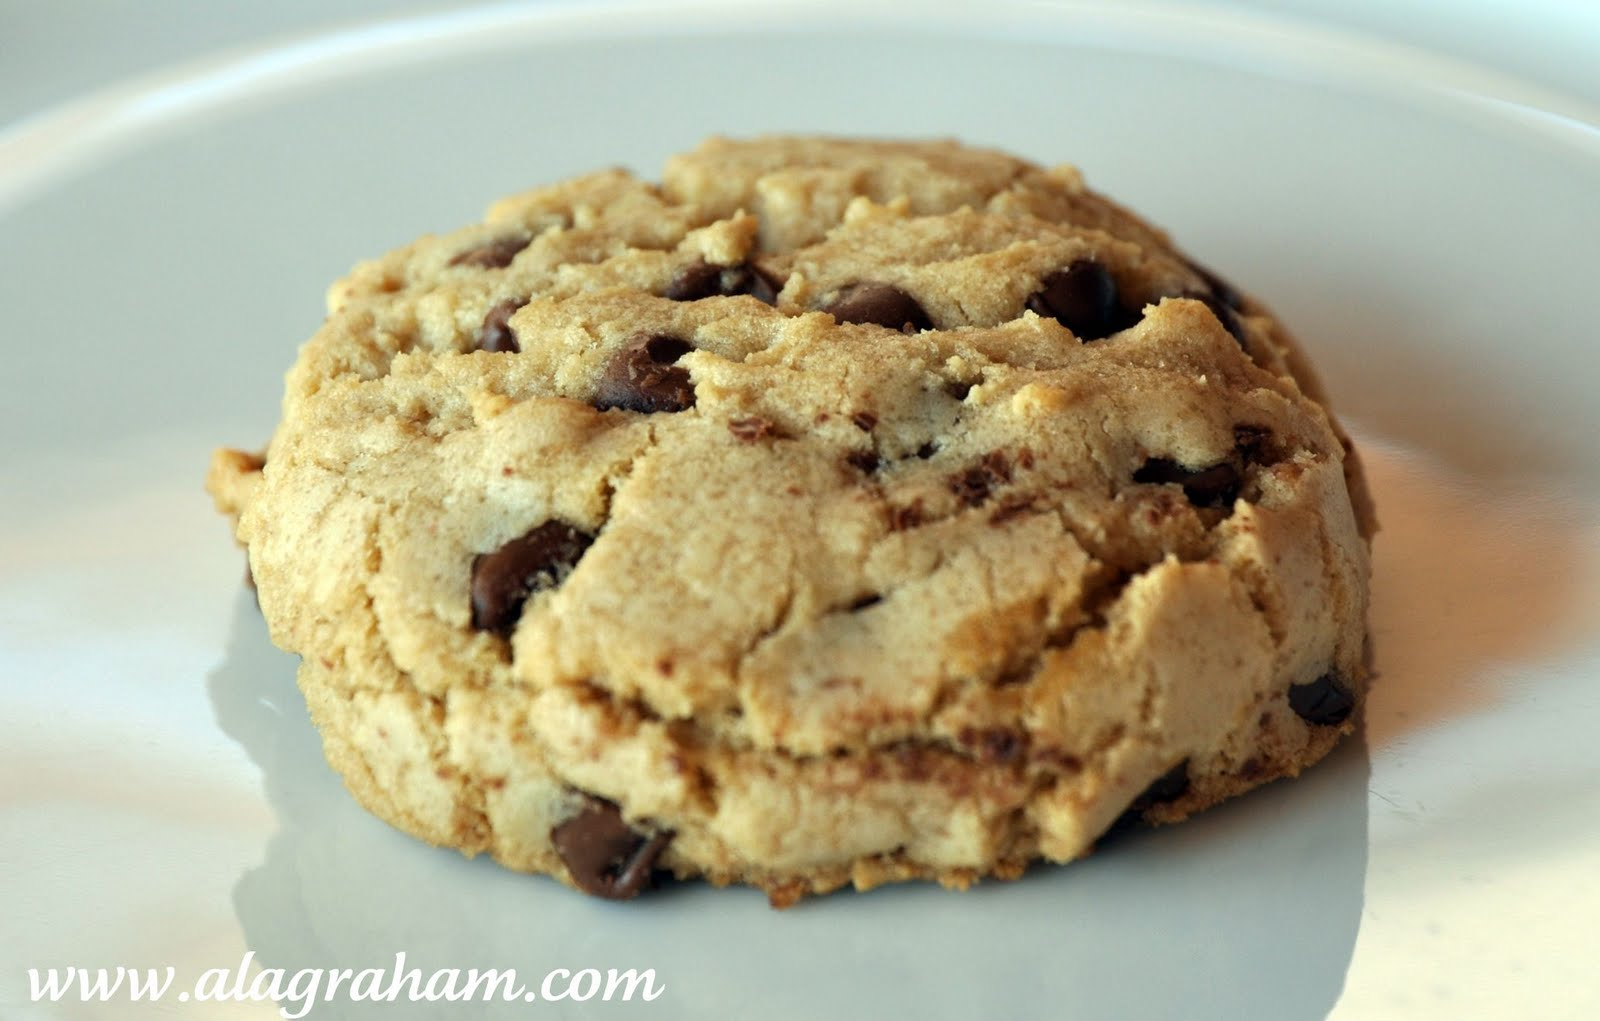 LA GRAHAM: THE BEST THICK AND CHEWY CHOCOLATE CHIP COOKIES